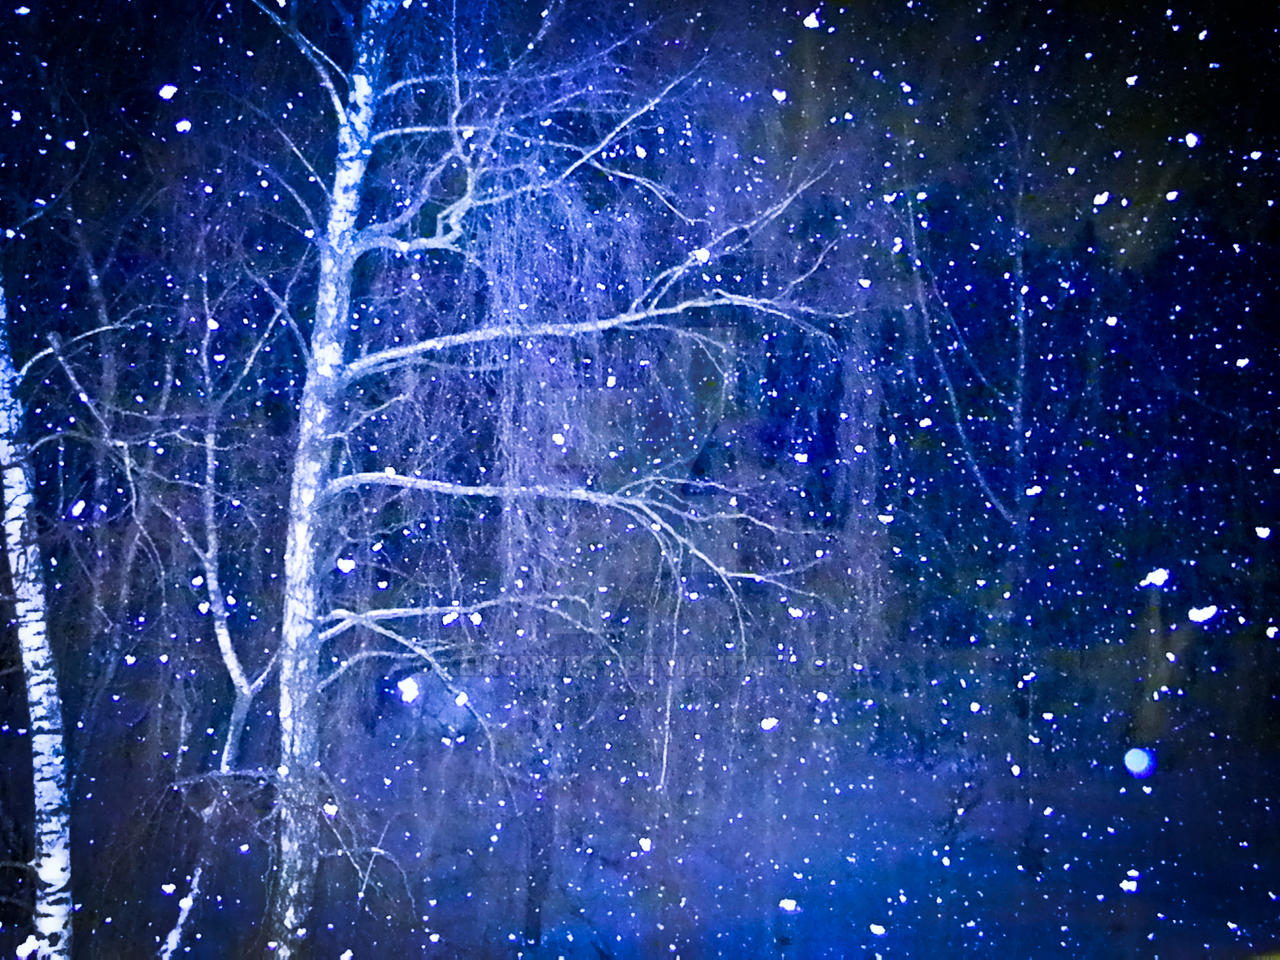 Latvian Snowfall Photography Print by KeironWest